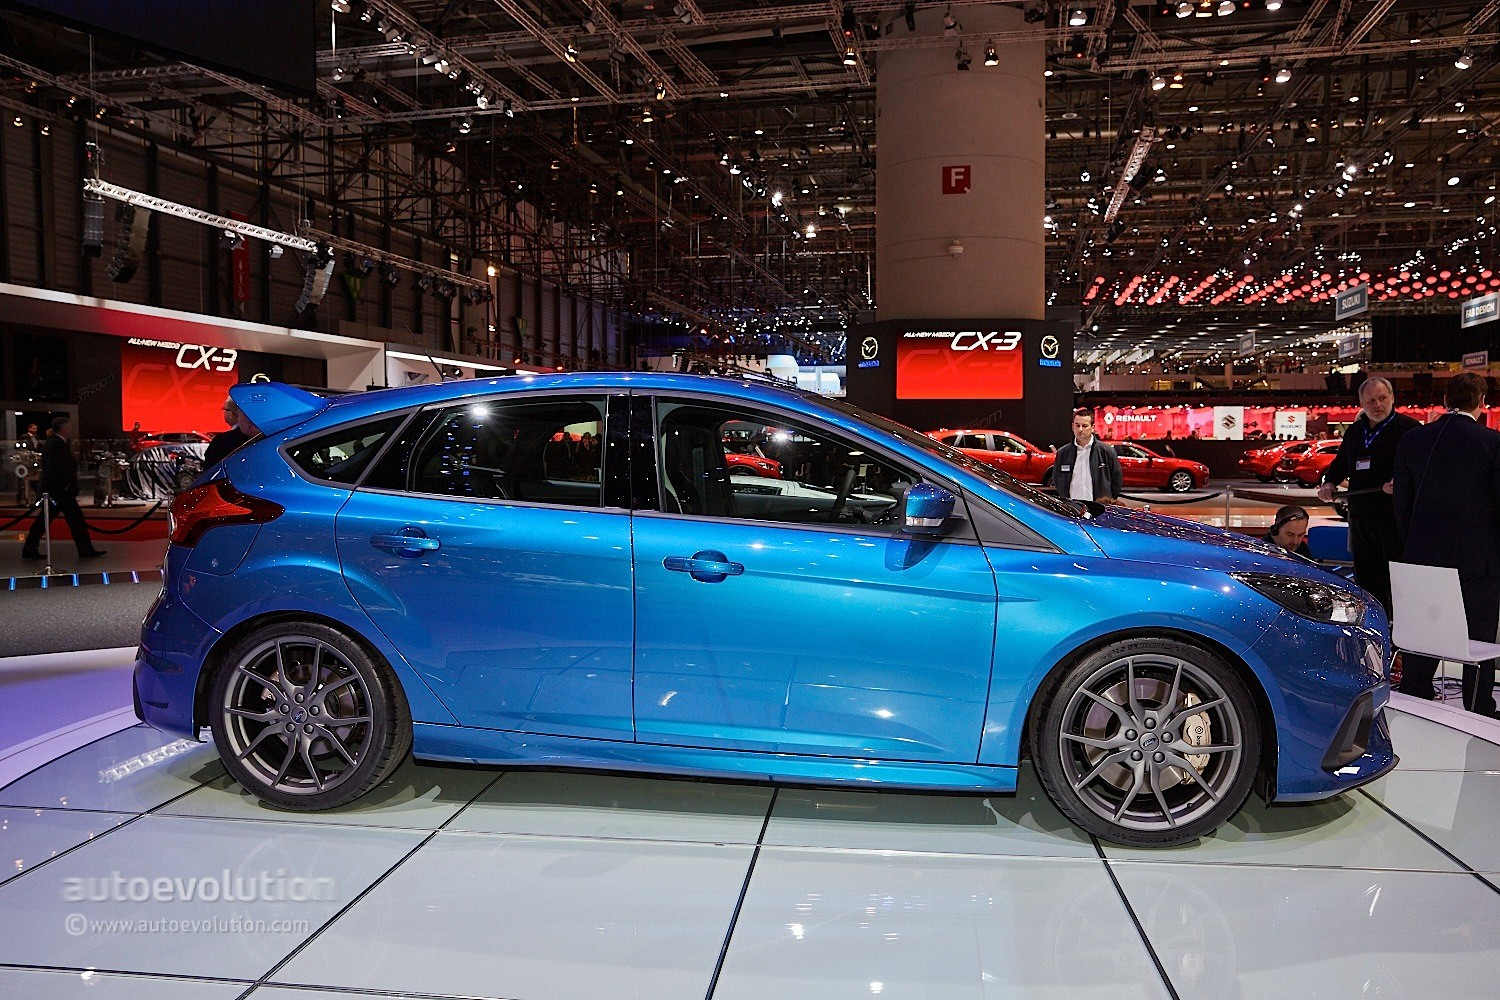 2016 Ford Focus RS Is a Liquid Blue Hooligan's Hot Hatch ...